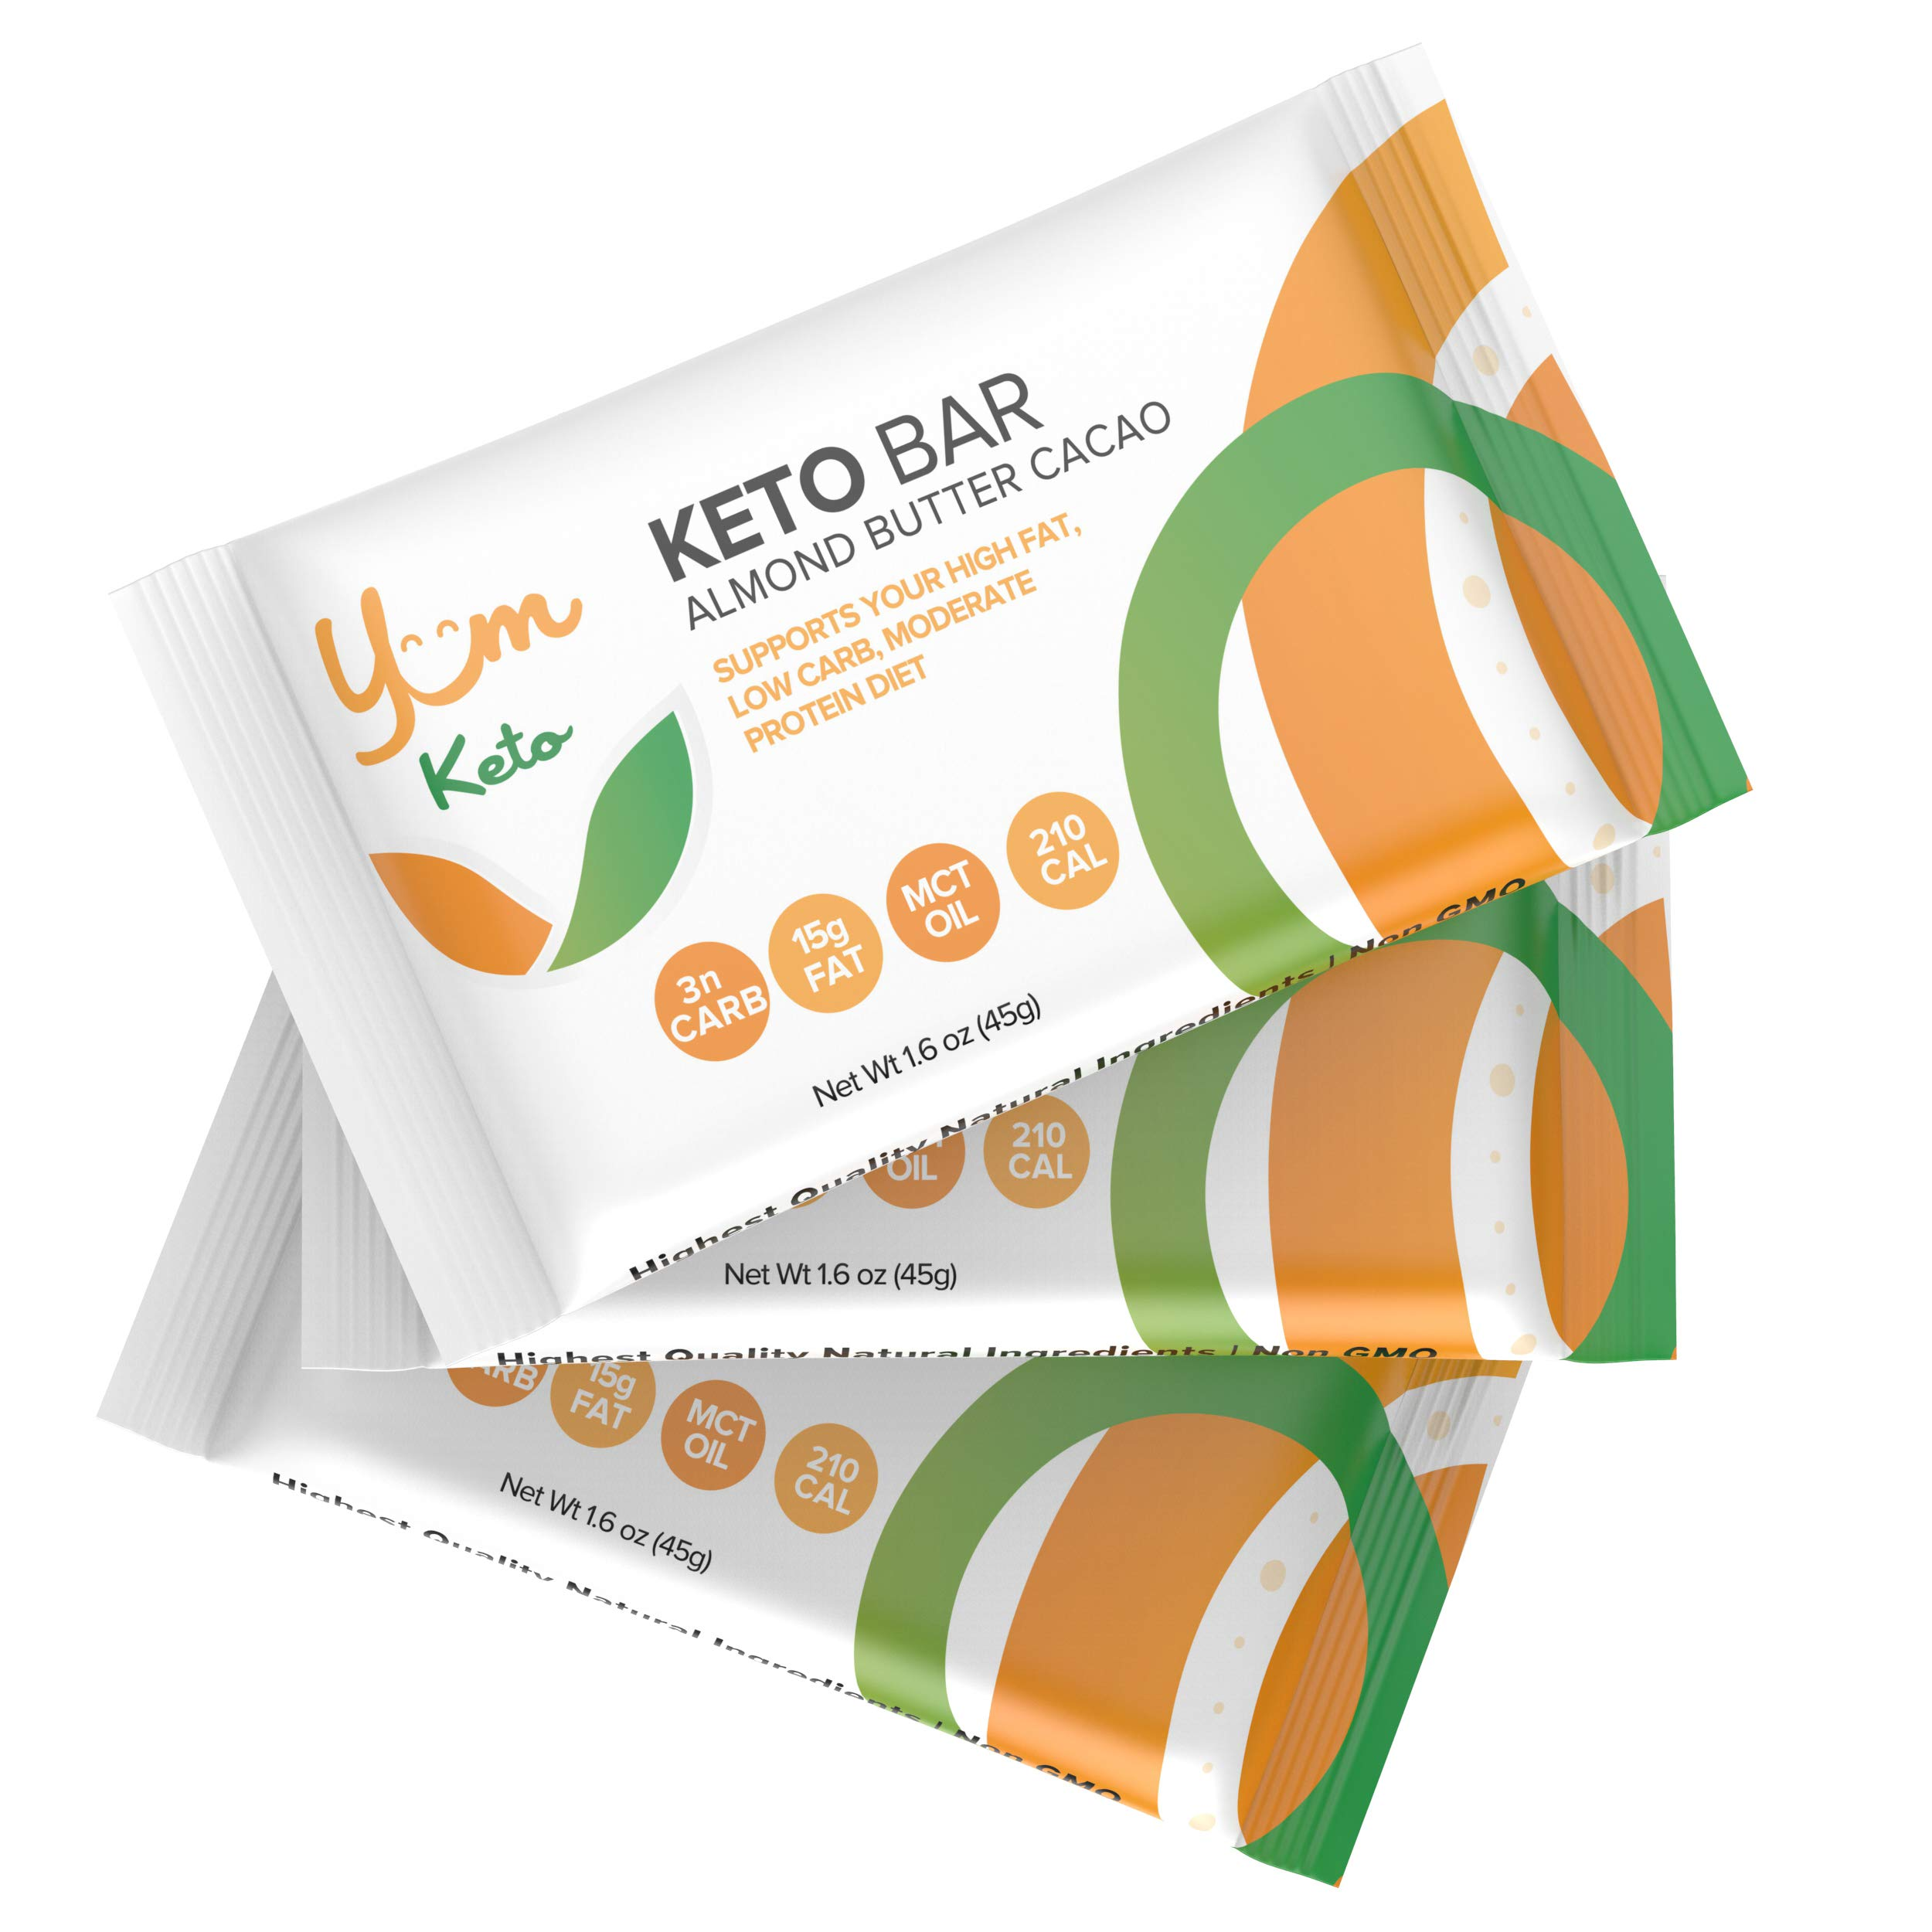 YUM Keto Bar, Almond, MCT Oil and Cacao Butter (6 Count) - Keto Snacks Low Carb Chocolate Keto Food - Ketogenic, Paleo, Low Carb and Glycemic Diet Friendly - 3g Net Carbs by Yumtrition